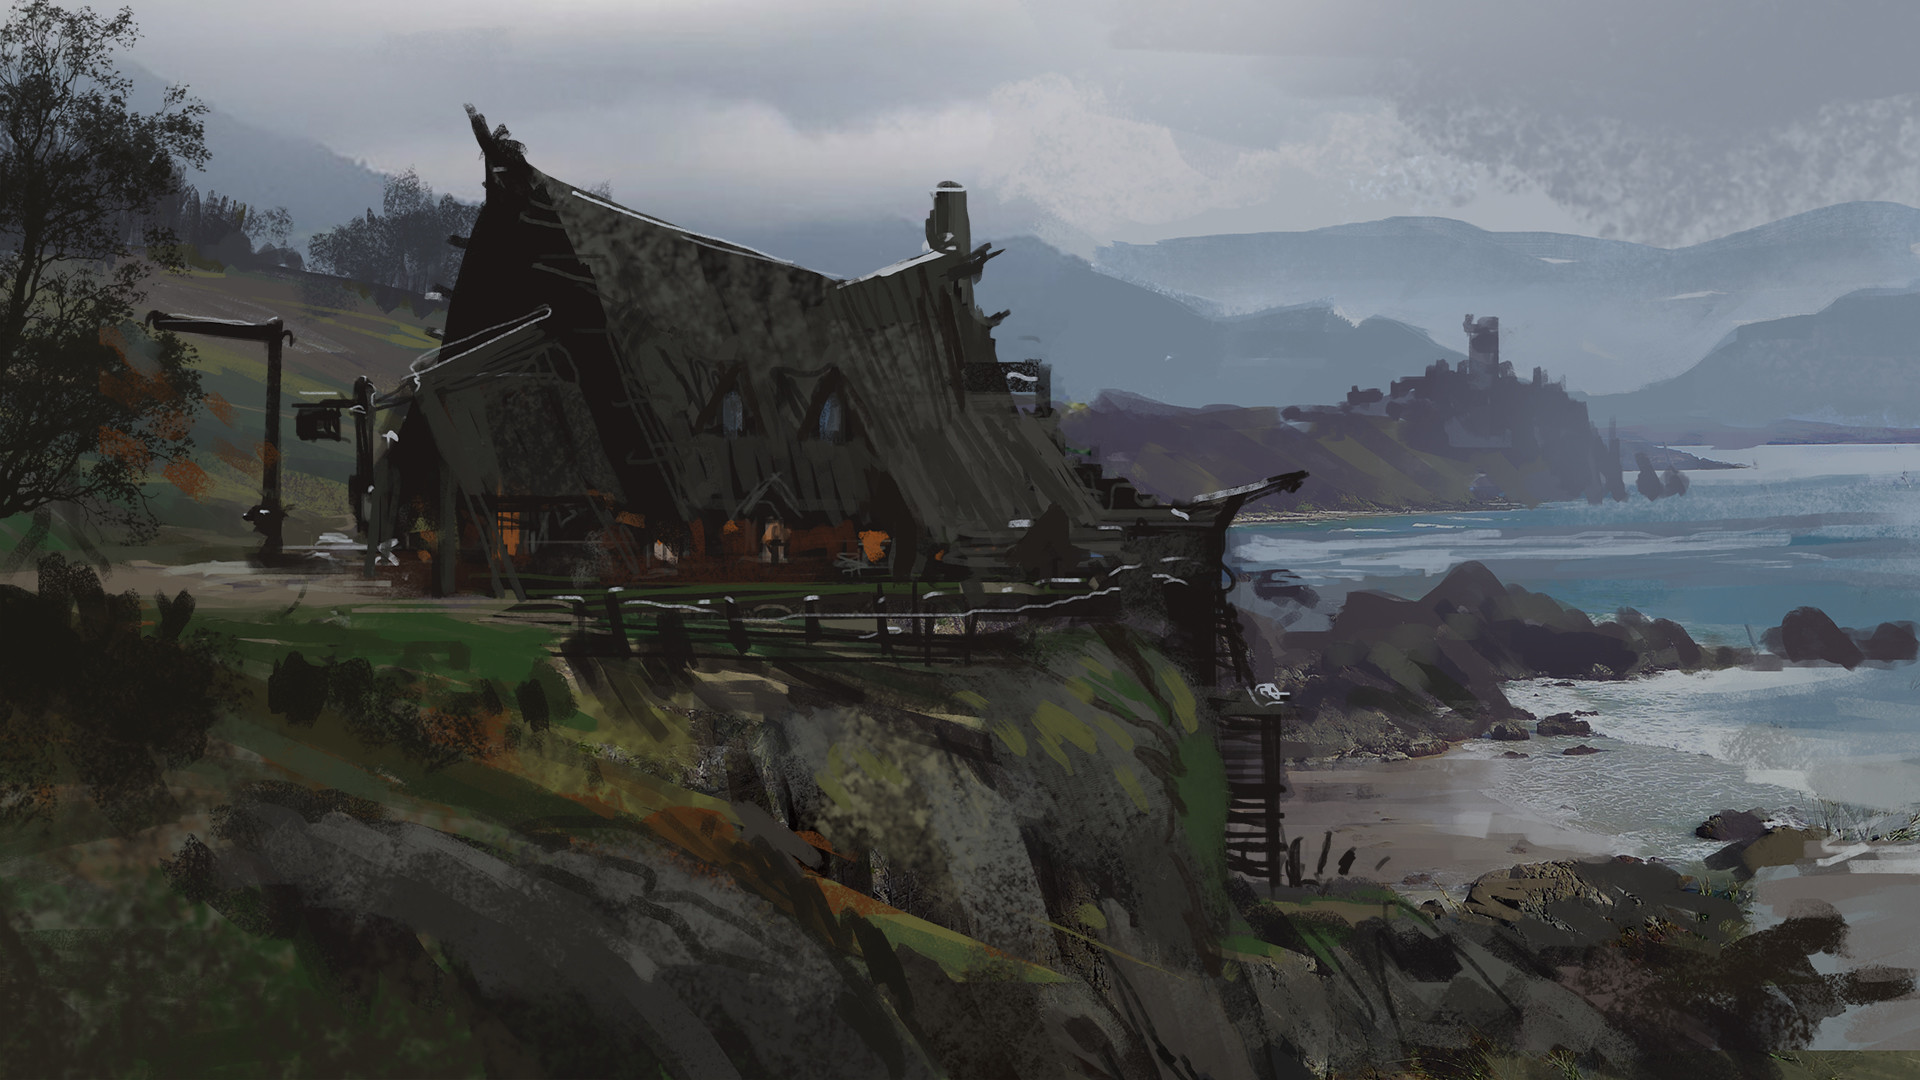 Klaus pillon bar outside dowport sketch 001